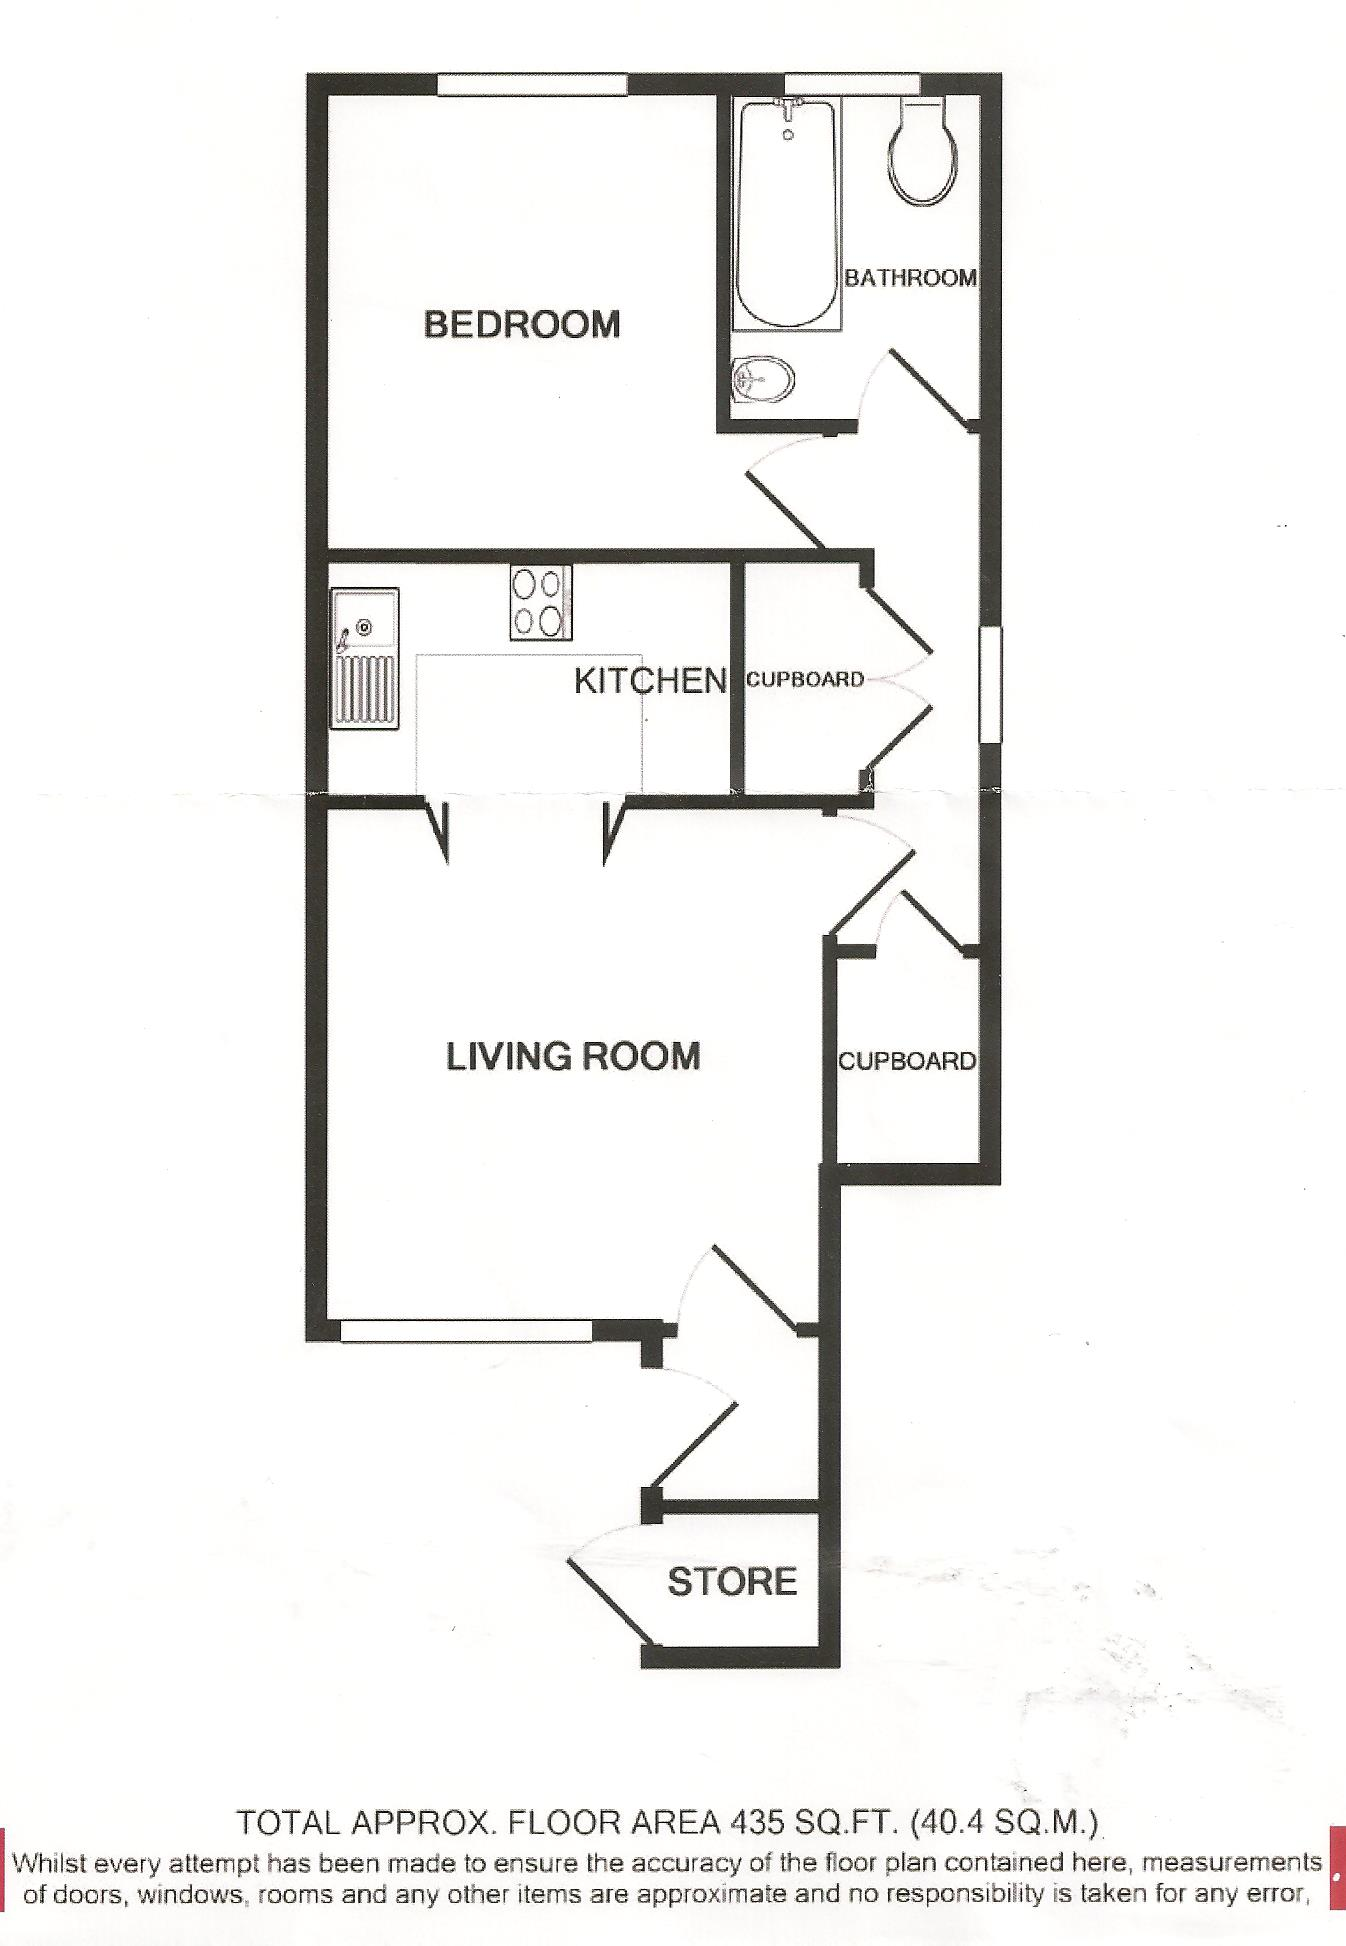 1 Bedroom Flat To Rent In Watford Private Landlord Bedroom Review Design